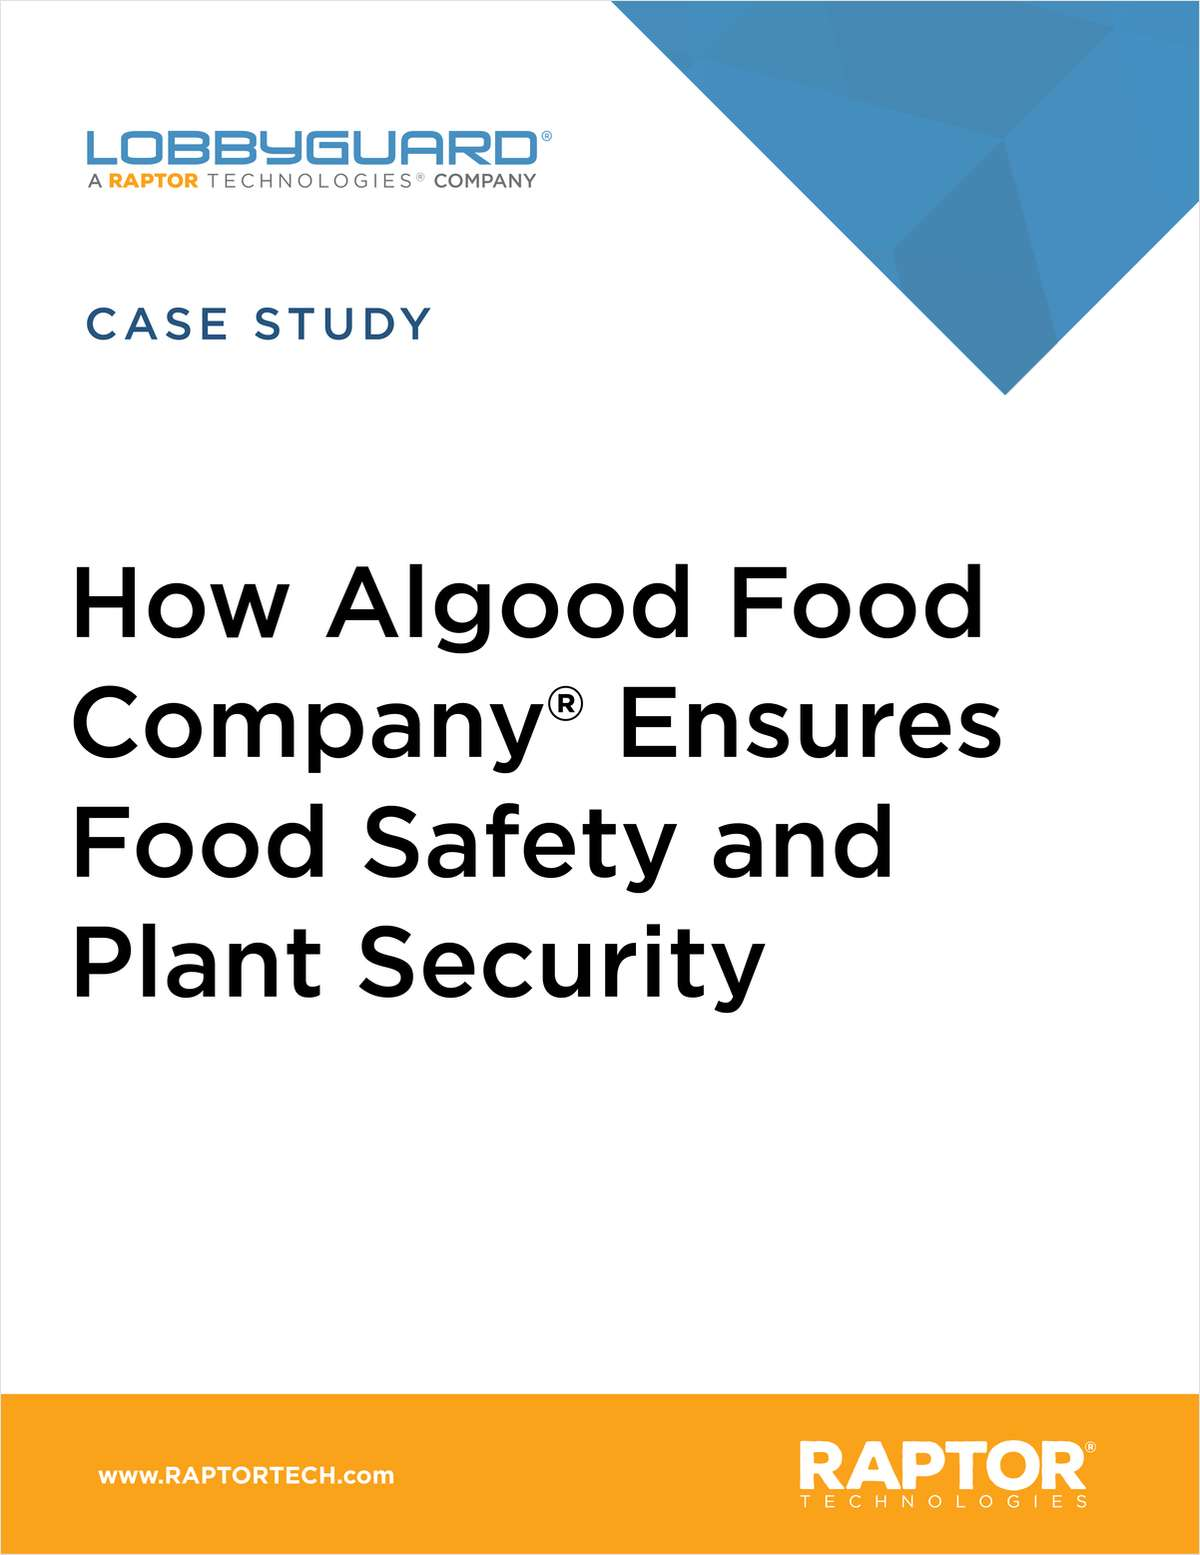 Algood Food Company® Ensures Food Safety and Plant Security, Monitors Costs with LobbyGuard®